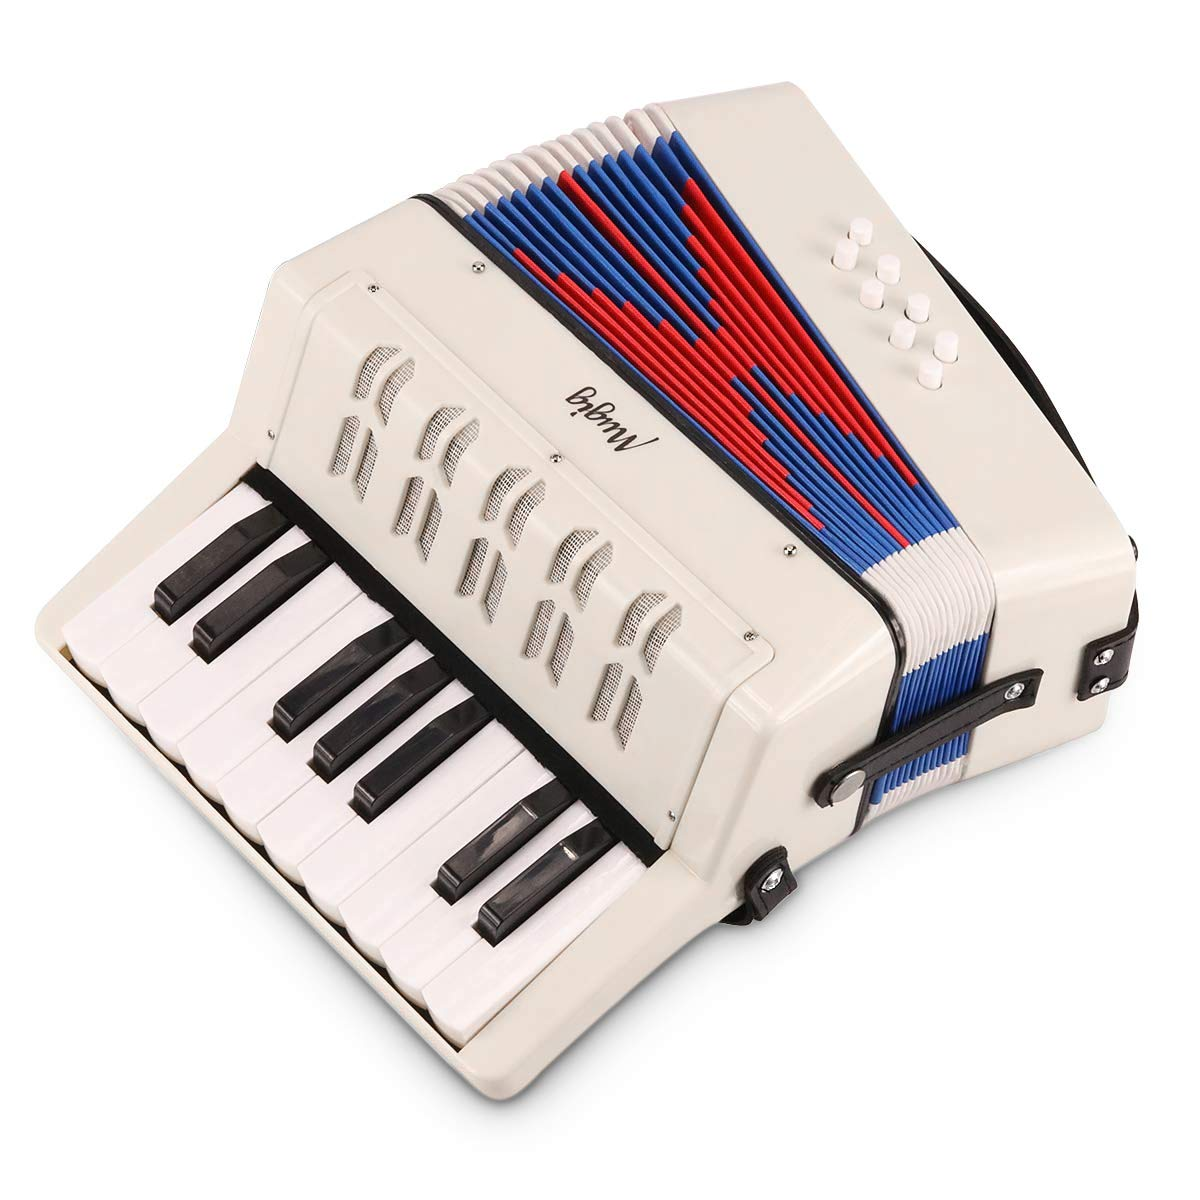 Mugig Accordion, Educational MKA-2 17 Key Keyboard Piano Accordion with adjustable Straps, Solo and Ensemble Instrument, Musical Instrument for Early Childhood Teaching, White